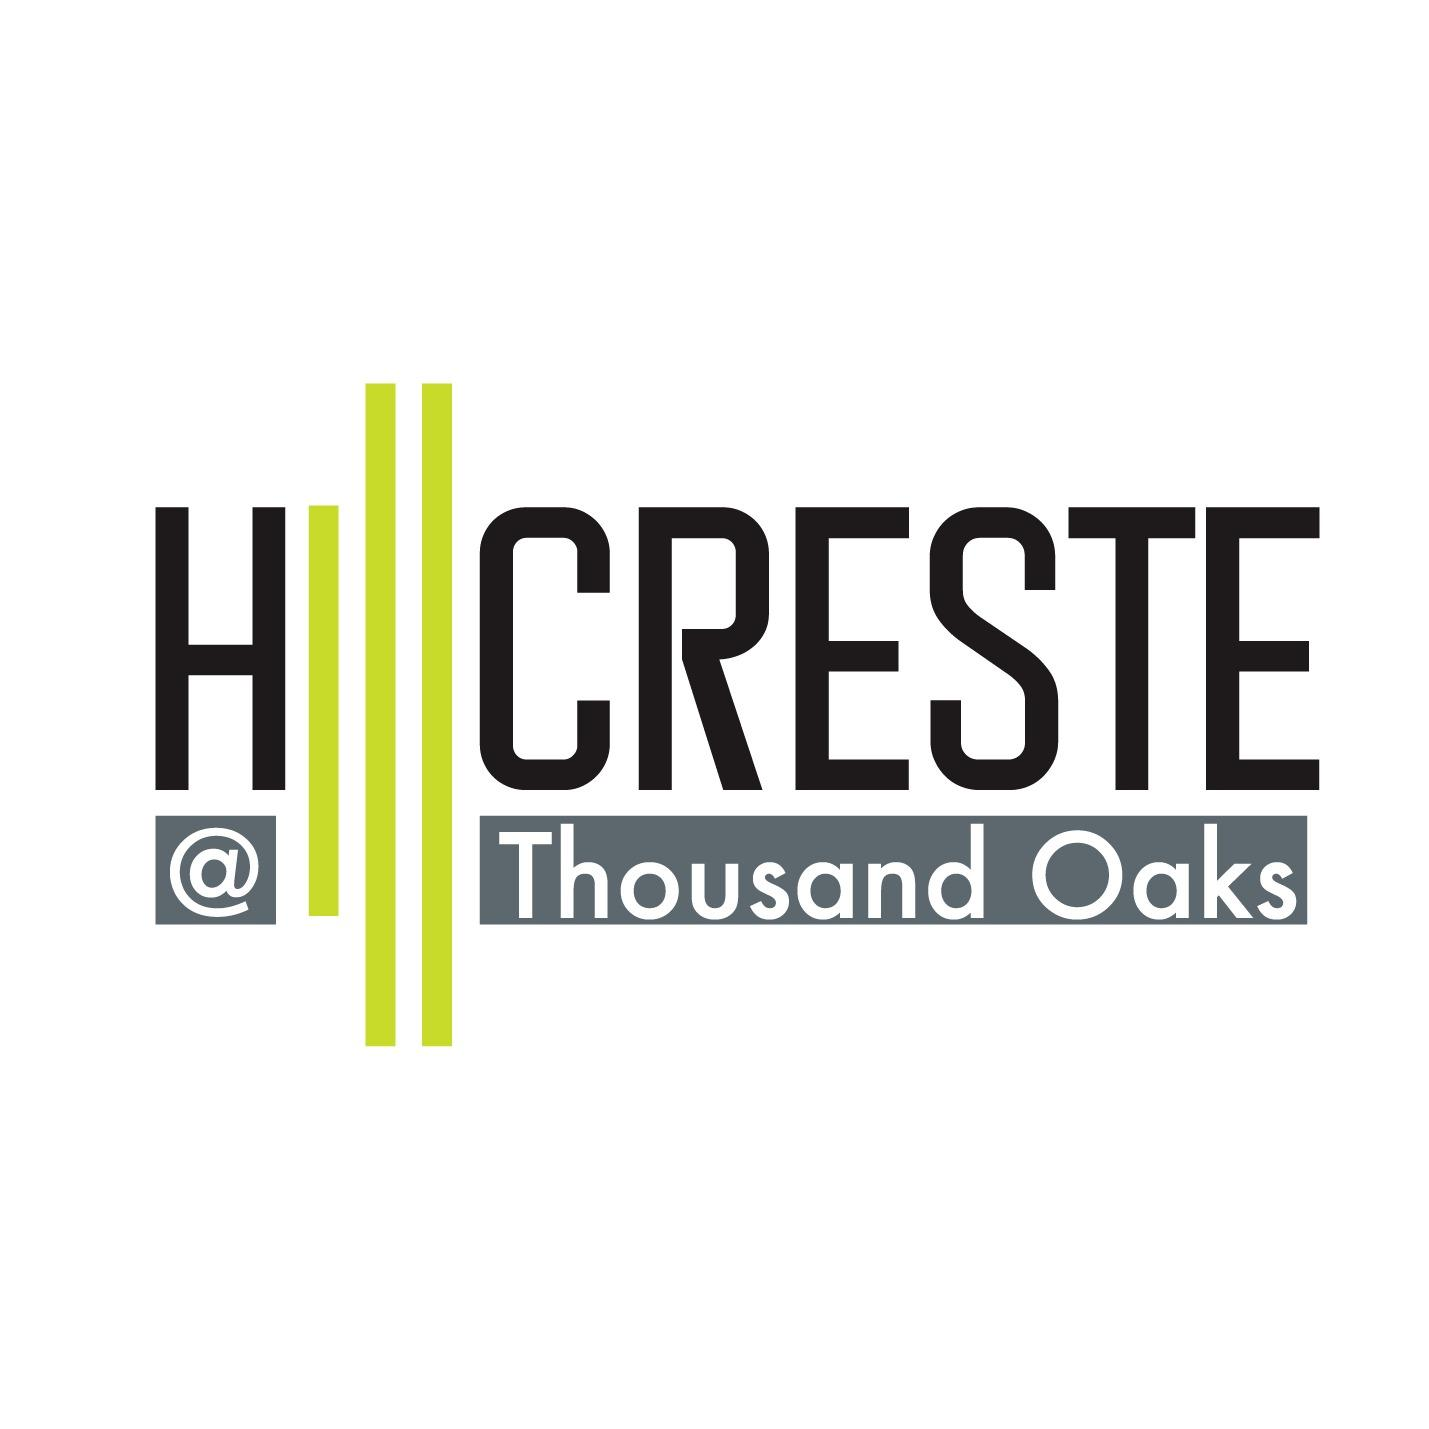 Hillcreste at Thousand Oaks